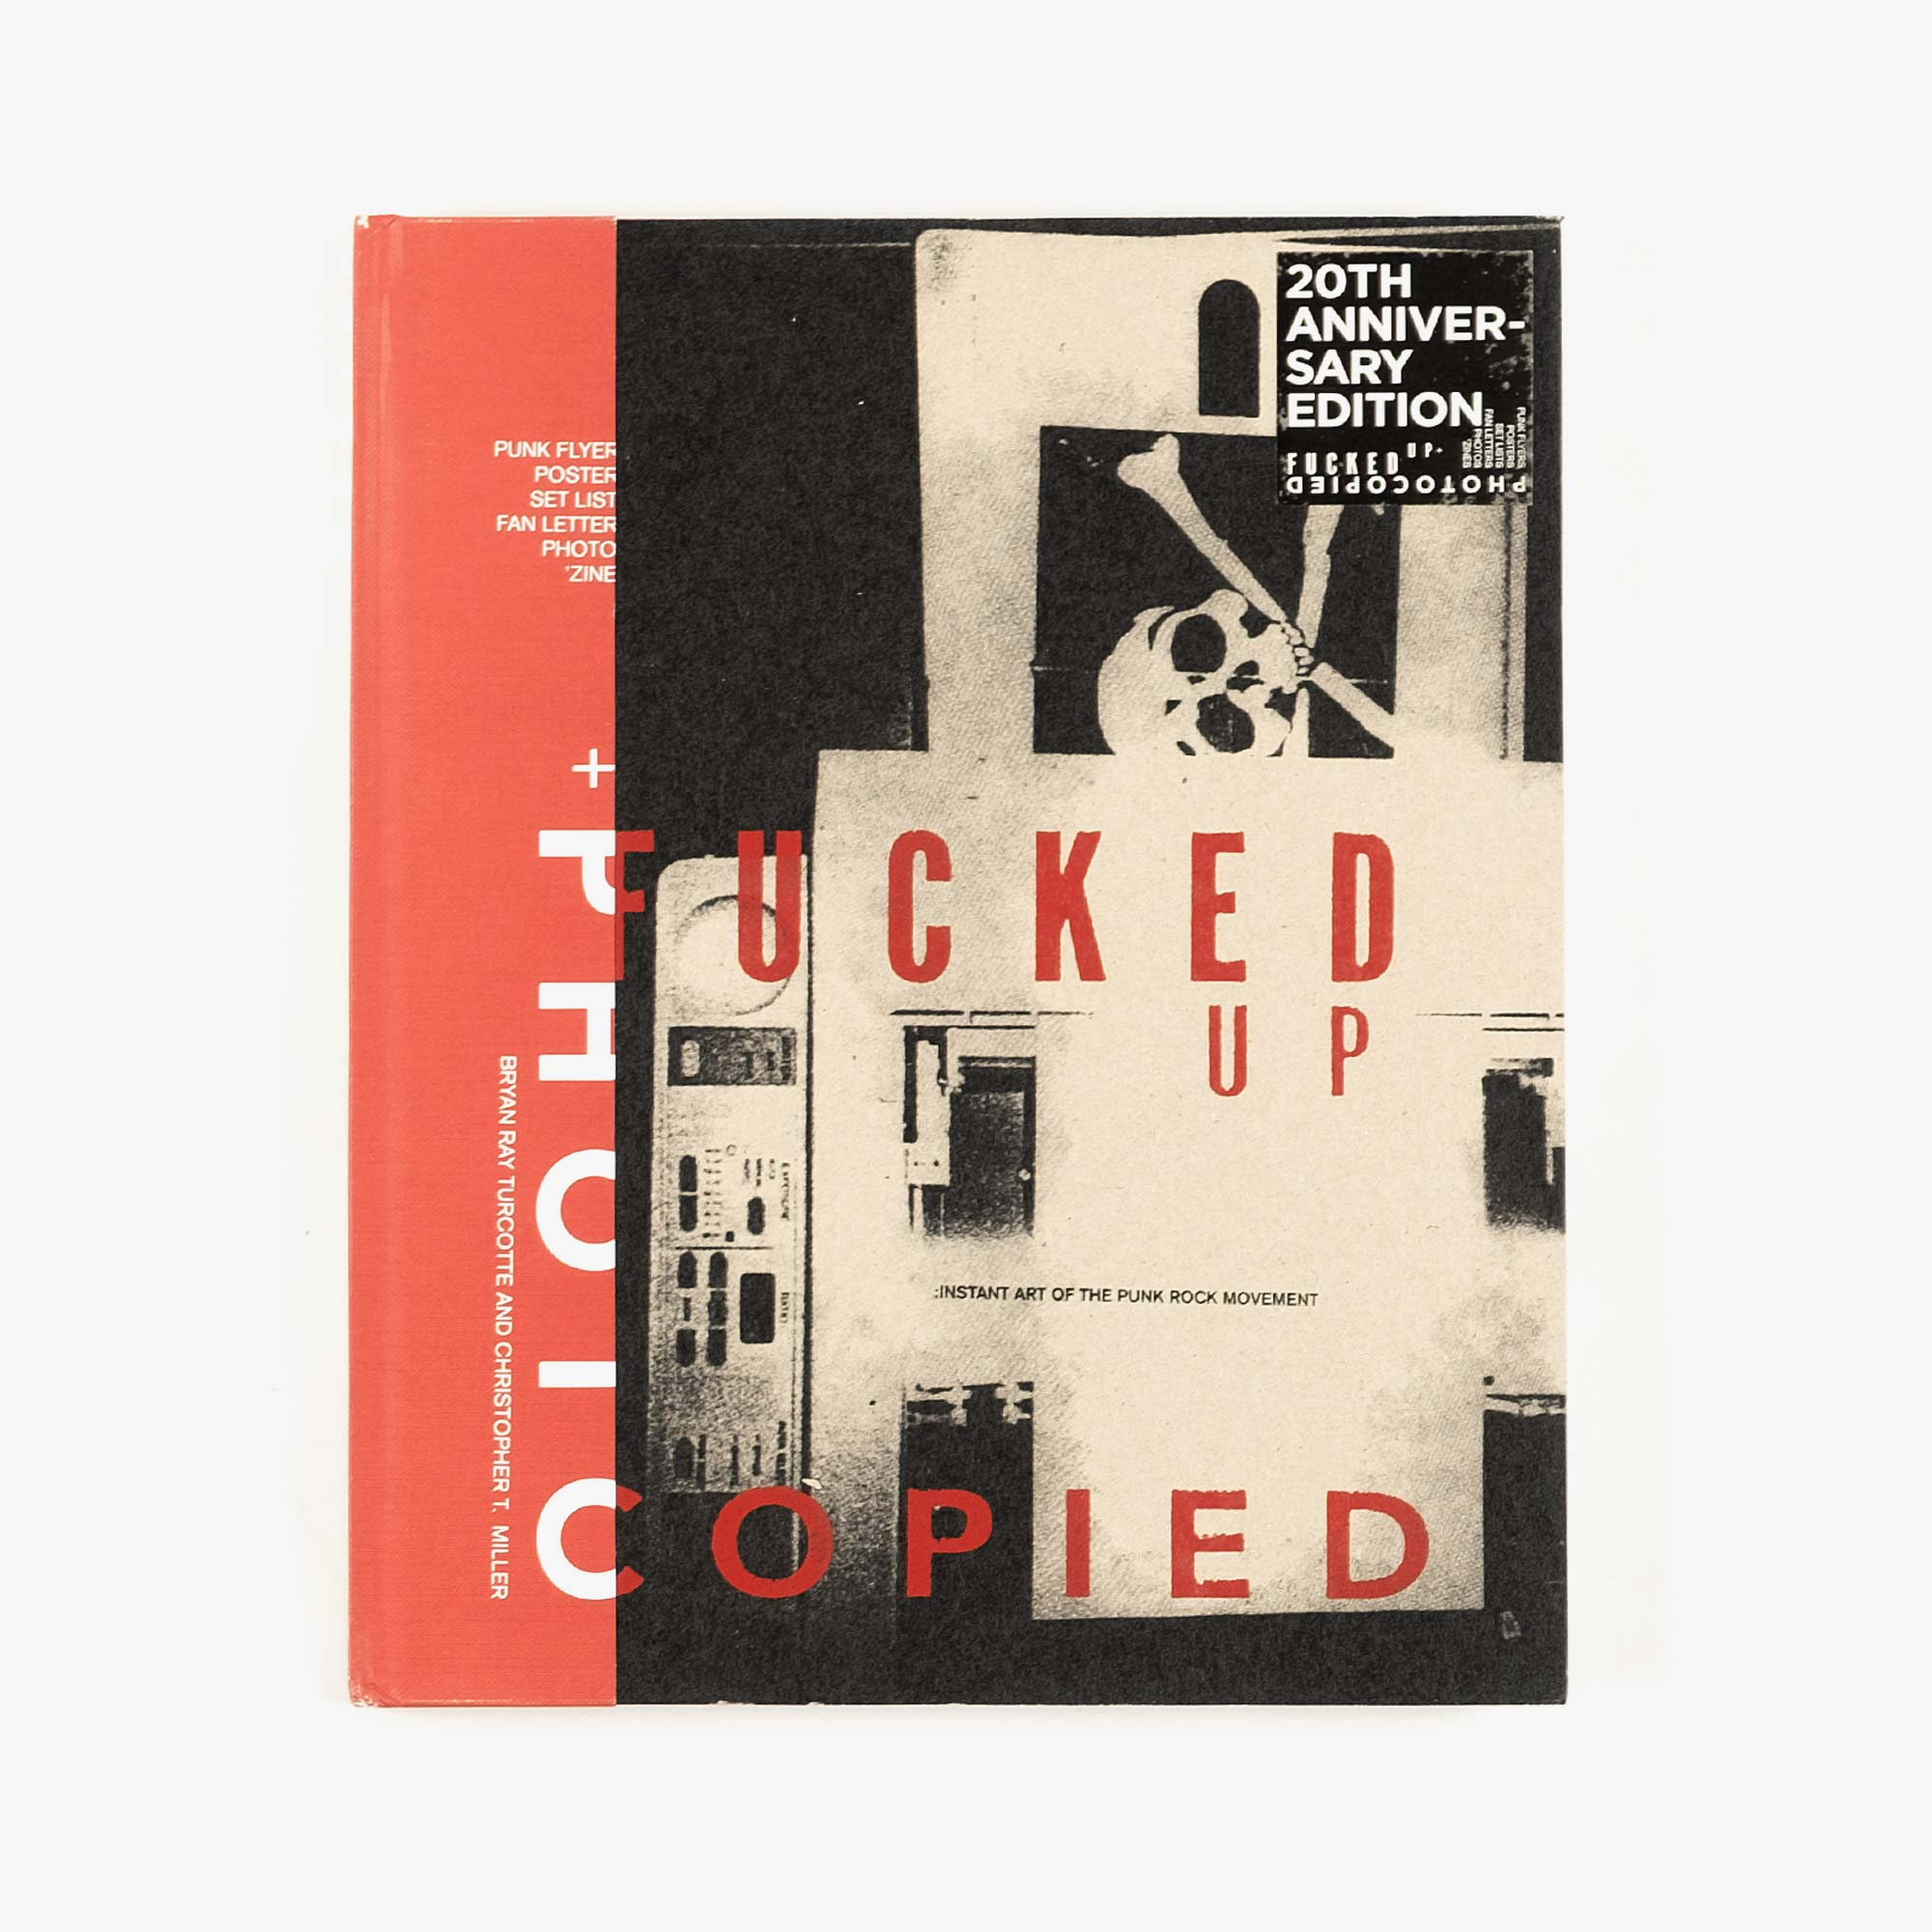 Gingko Press Fucked Up + Photocopied 20th Anniversary - Turcotte / Miller 1